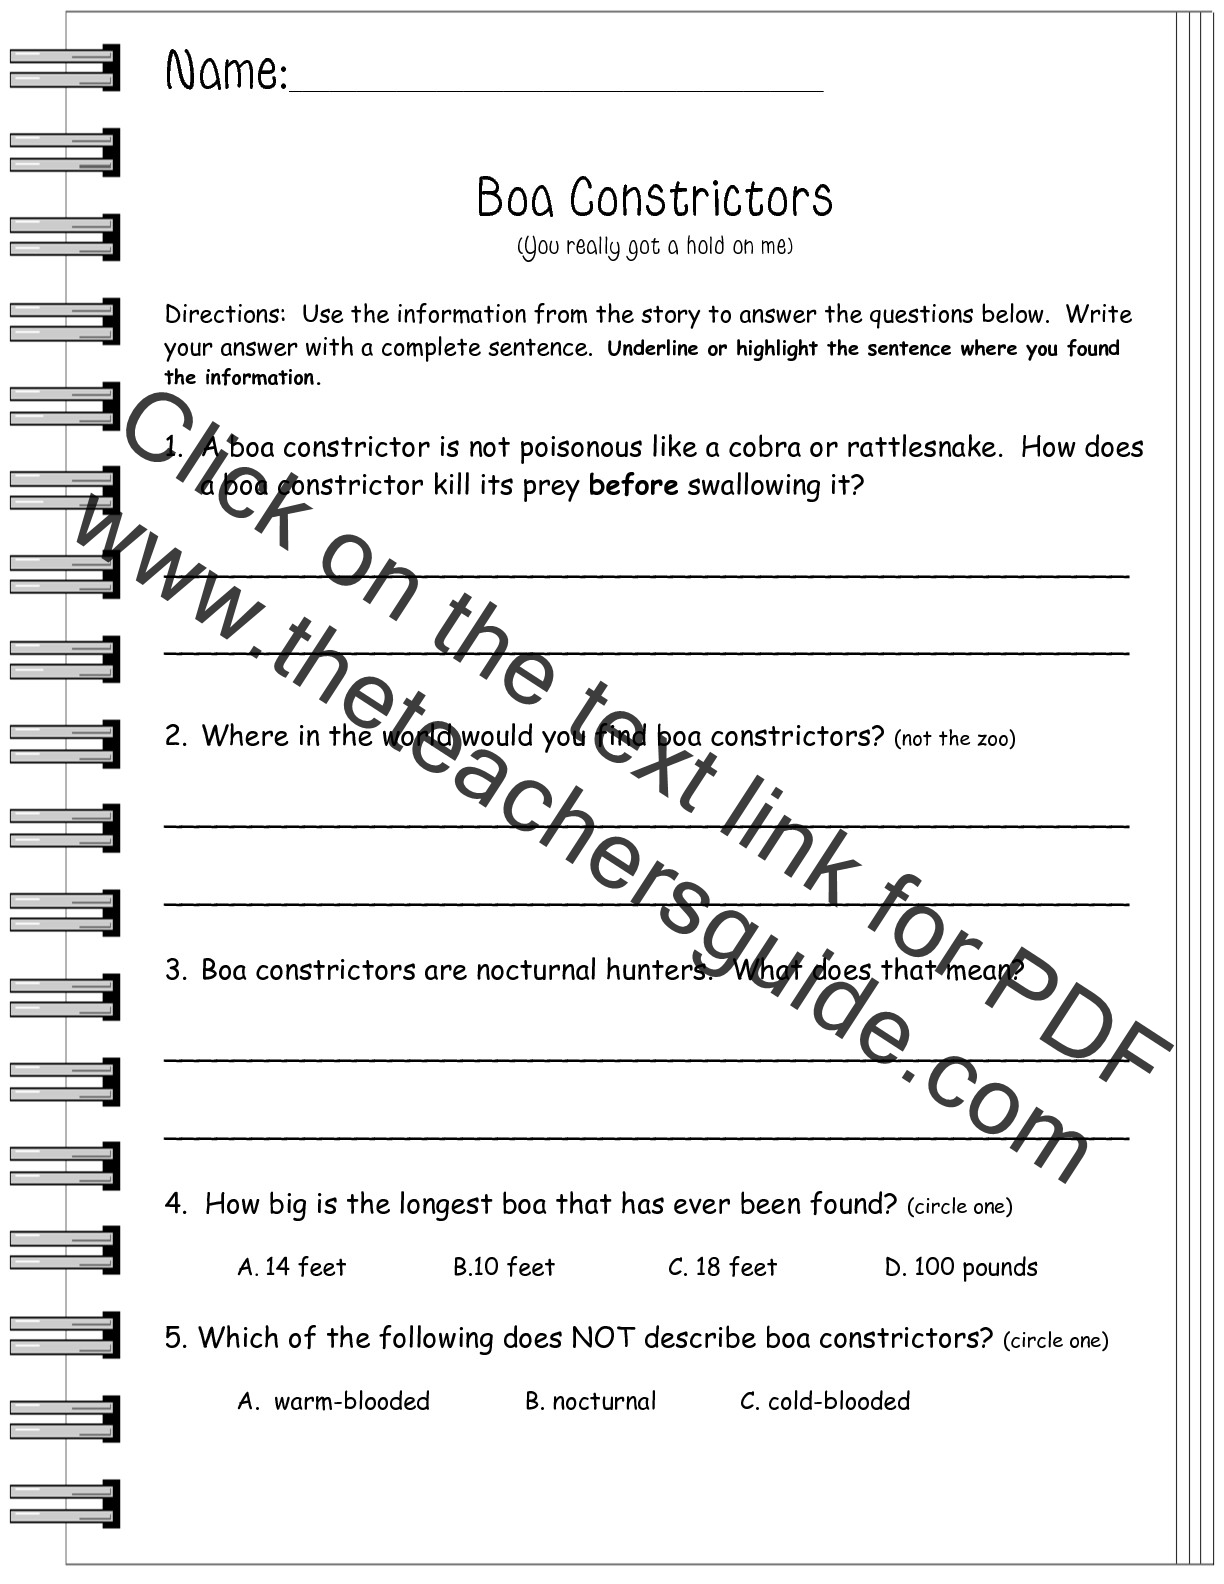 Informational Text Worksheets And Printouts From The Teacher S Guide